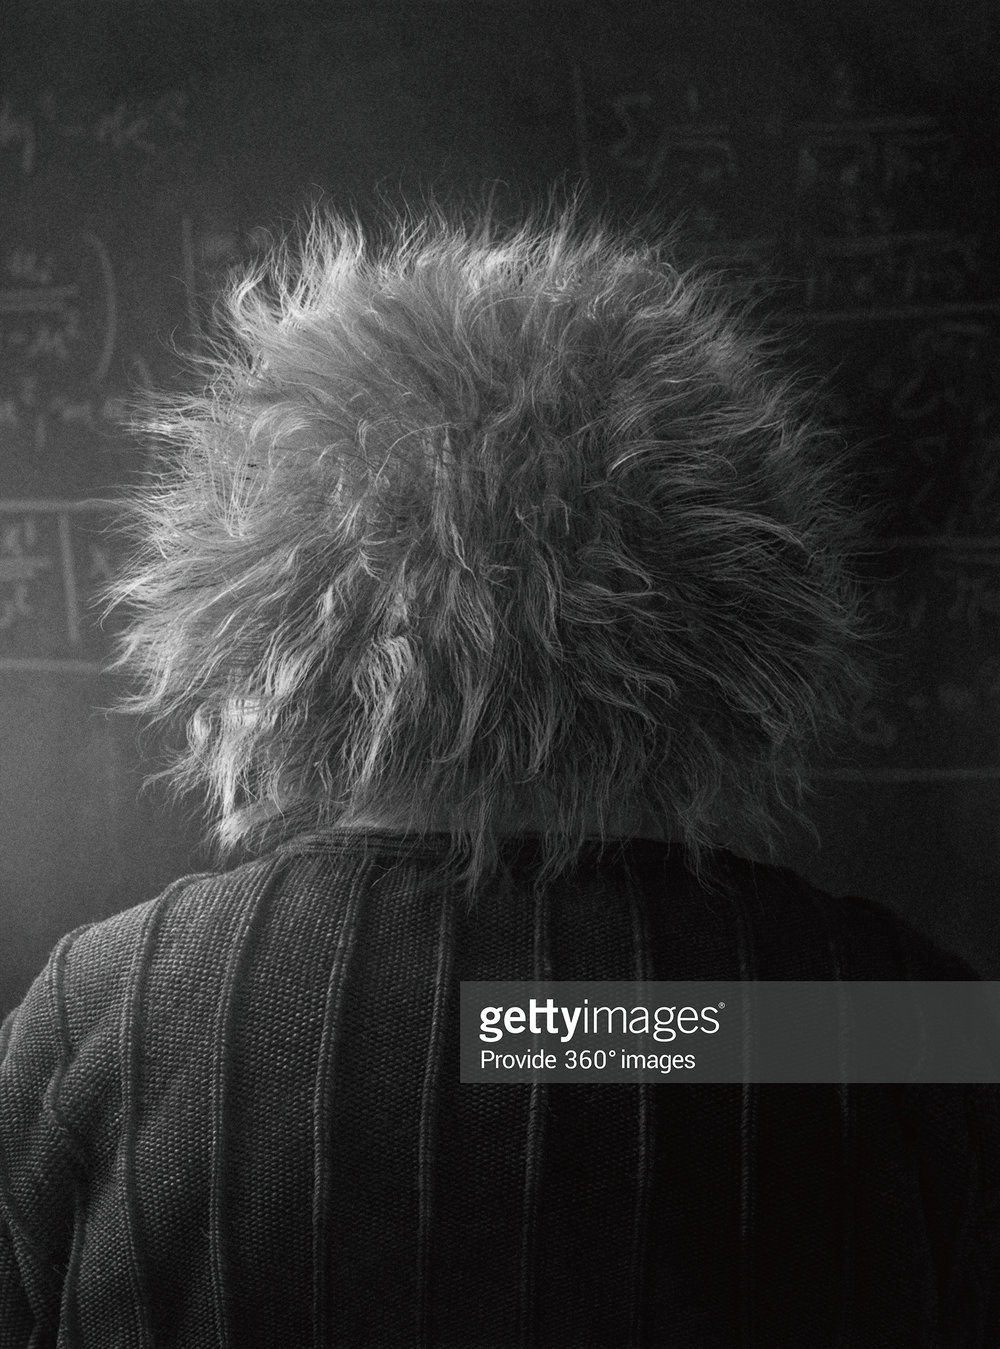 BACK-Einstein_Srgb.jpg